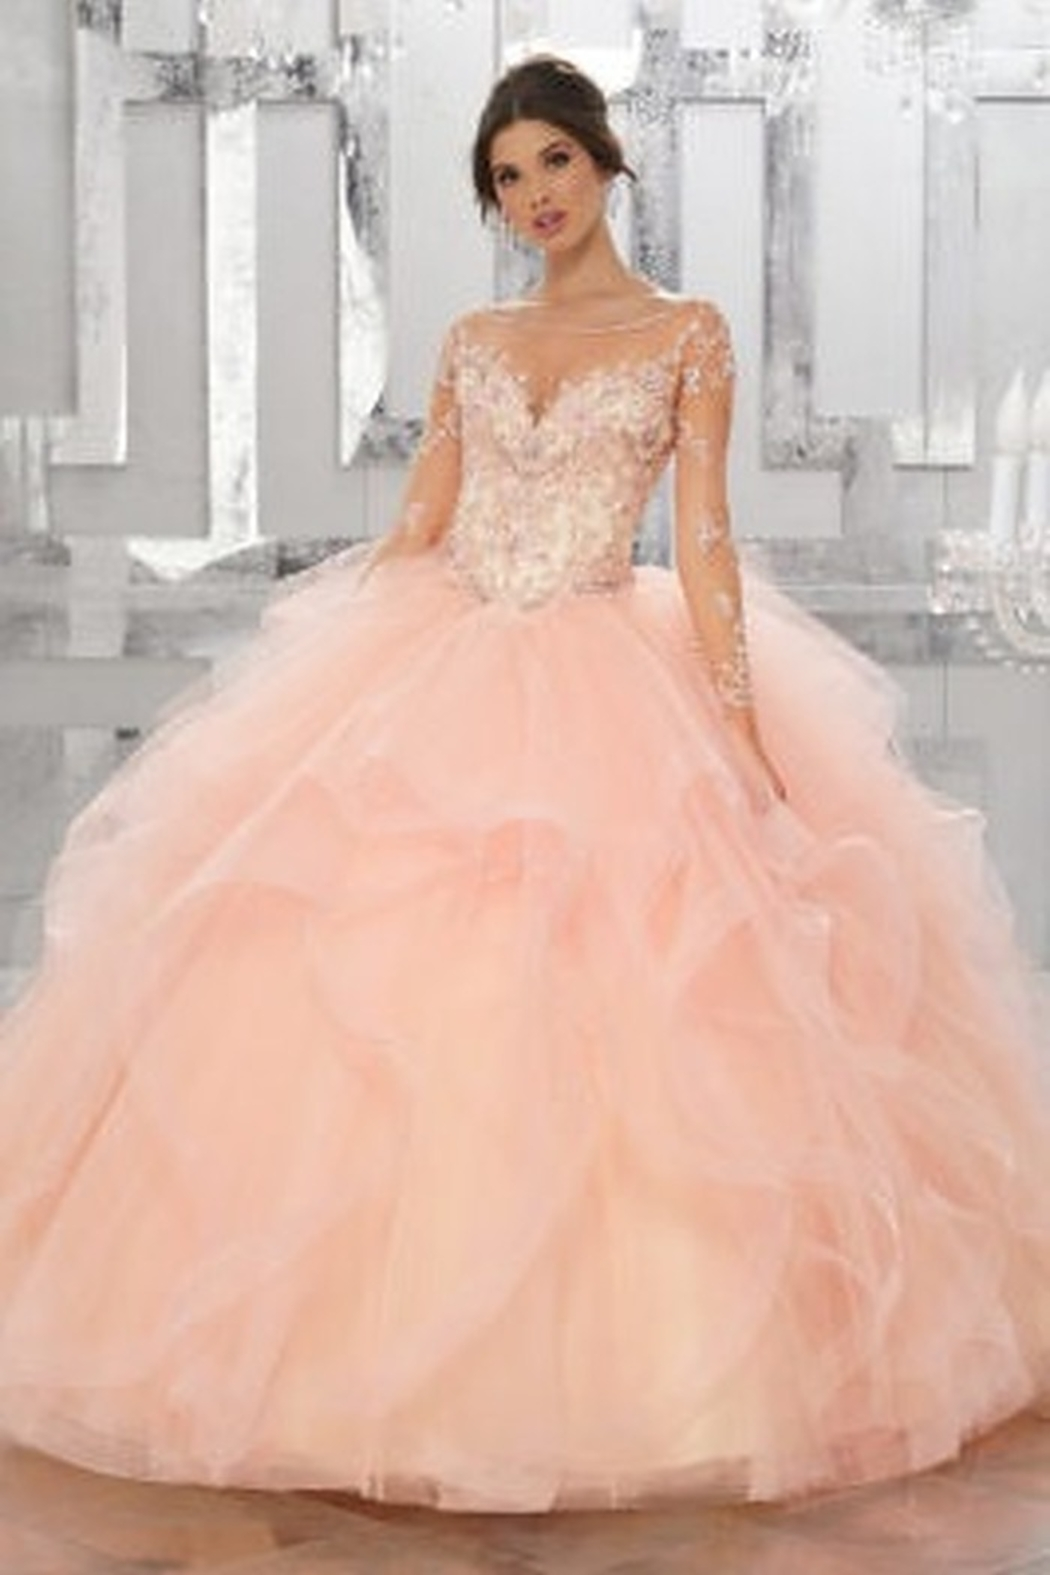 Morilee Beaded Embroidery Flounced Tulle Ball Gown w/ Matching Stole - Main Image